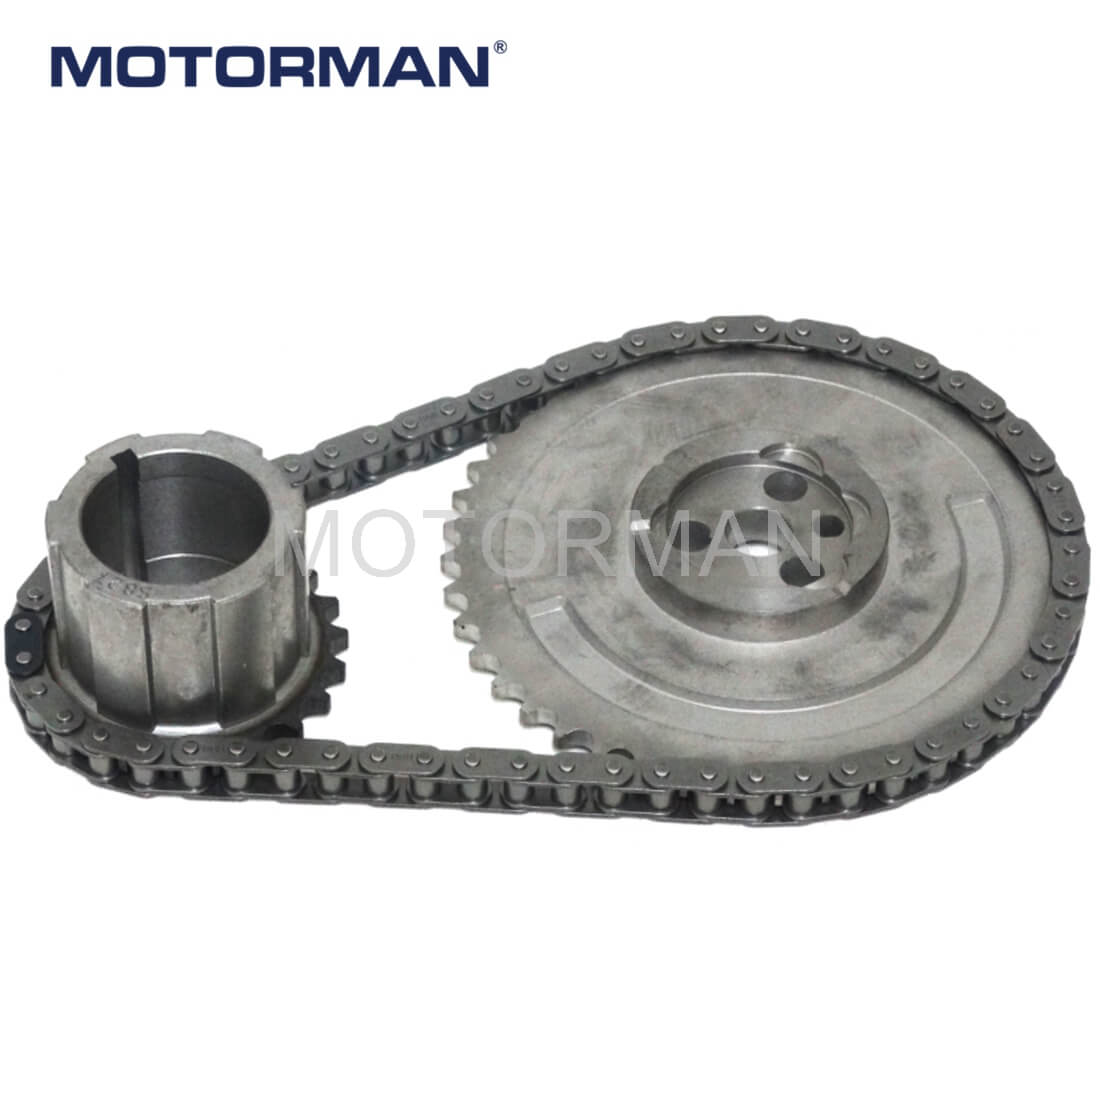 Engine Parts Timing Chain NMGM006